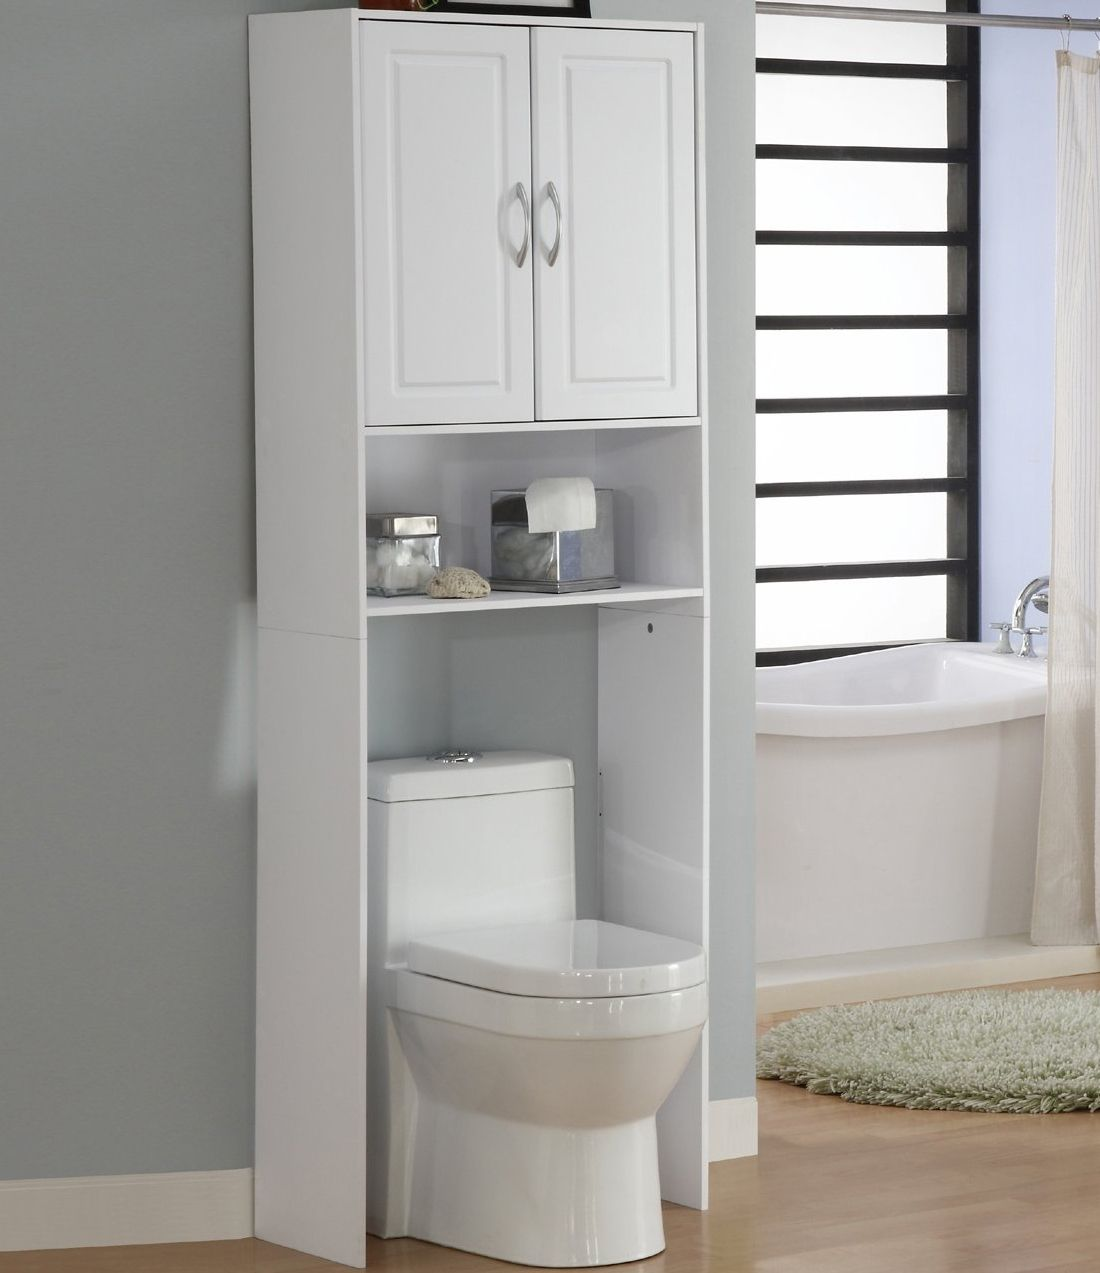 Small free standing bathroom cabinets best interior paint brands